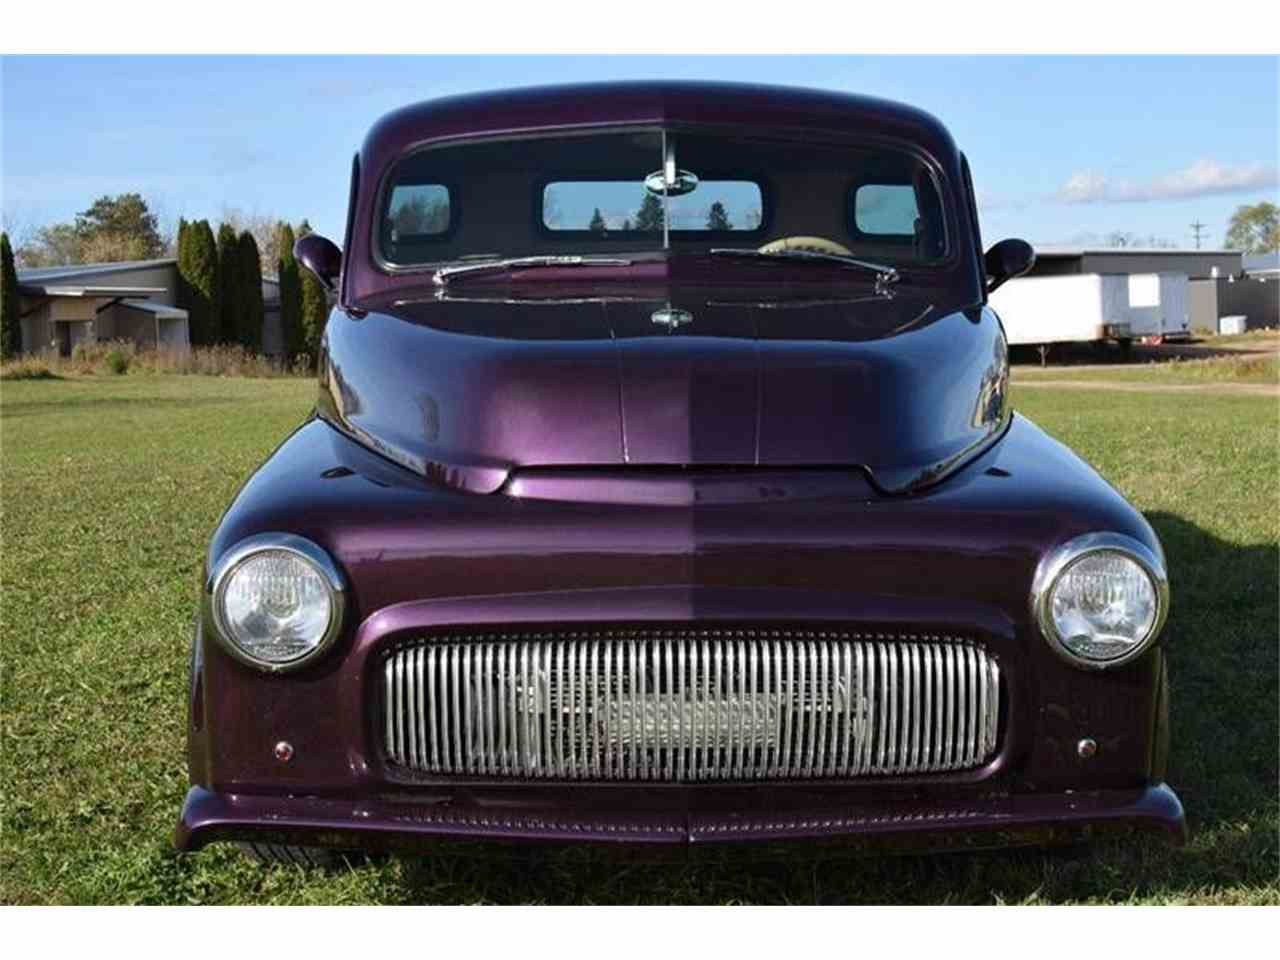 Large Picture of Classic 1952 Dodge Pickup located in Annandale Minnesota Auction Vehicle Offered by Classic Rides and Rods - LTQS